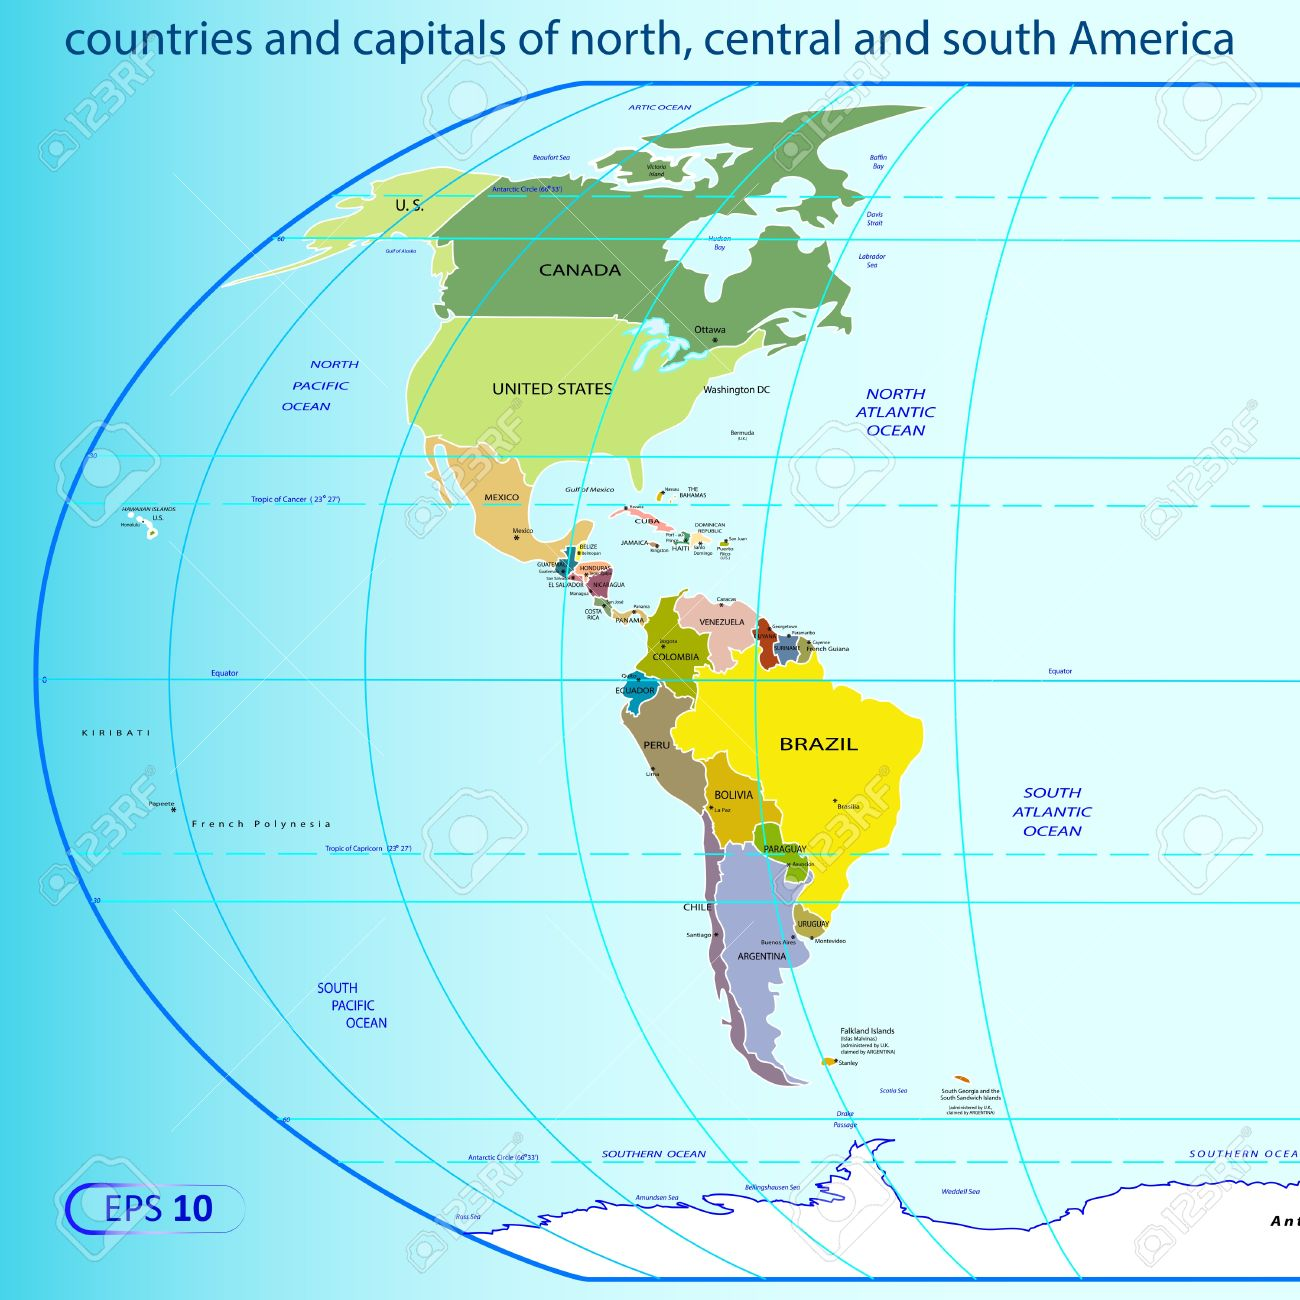 Map Of The Americas Stock Illustrations Cliparts And - Map of central and north america with capitals